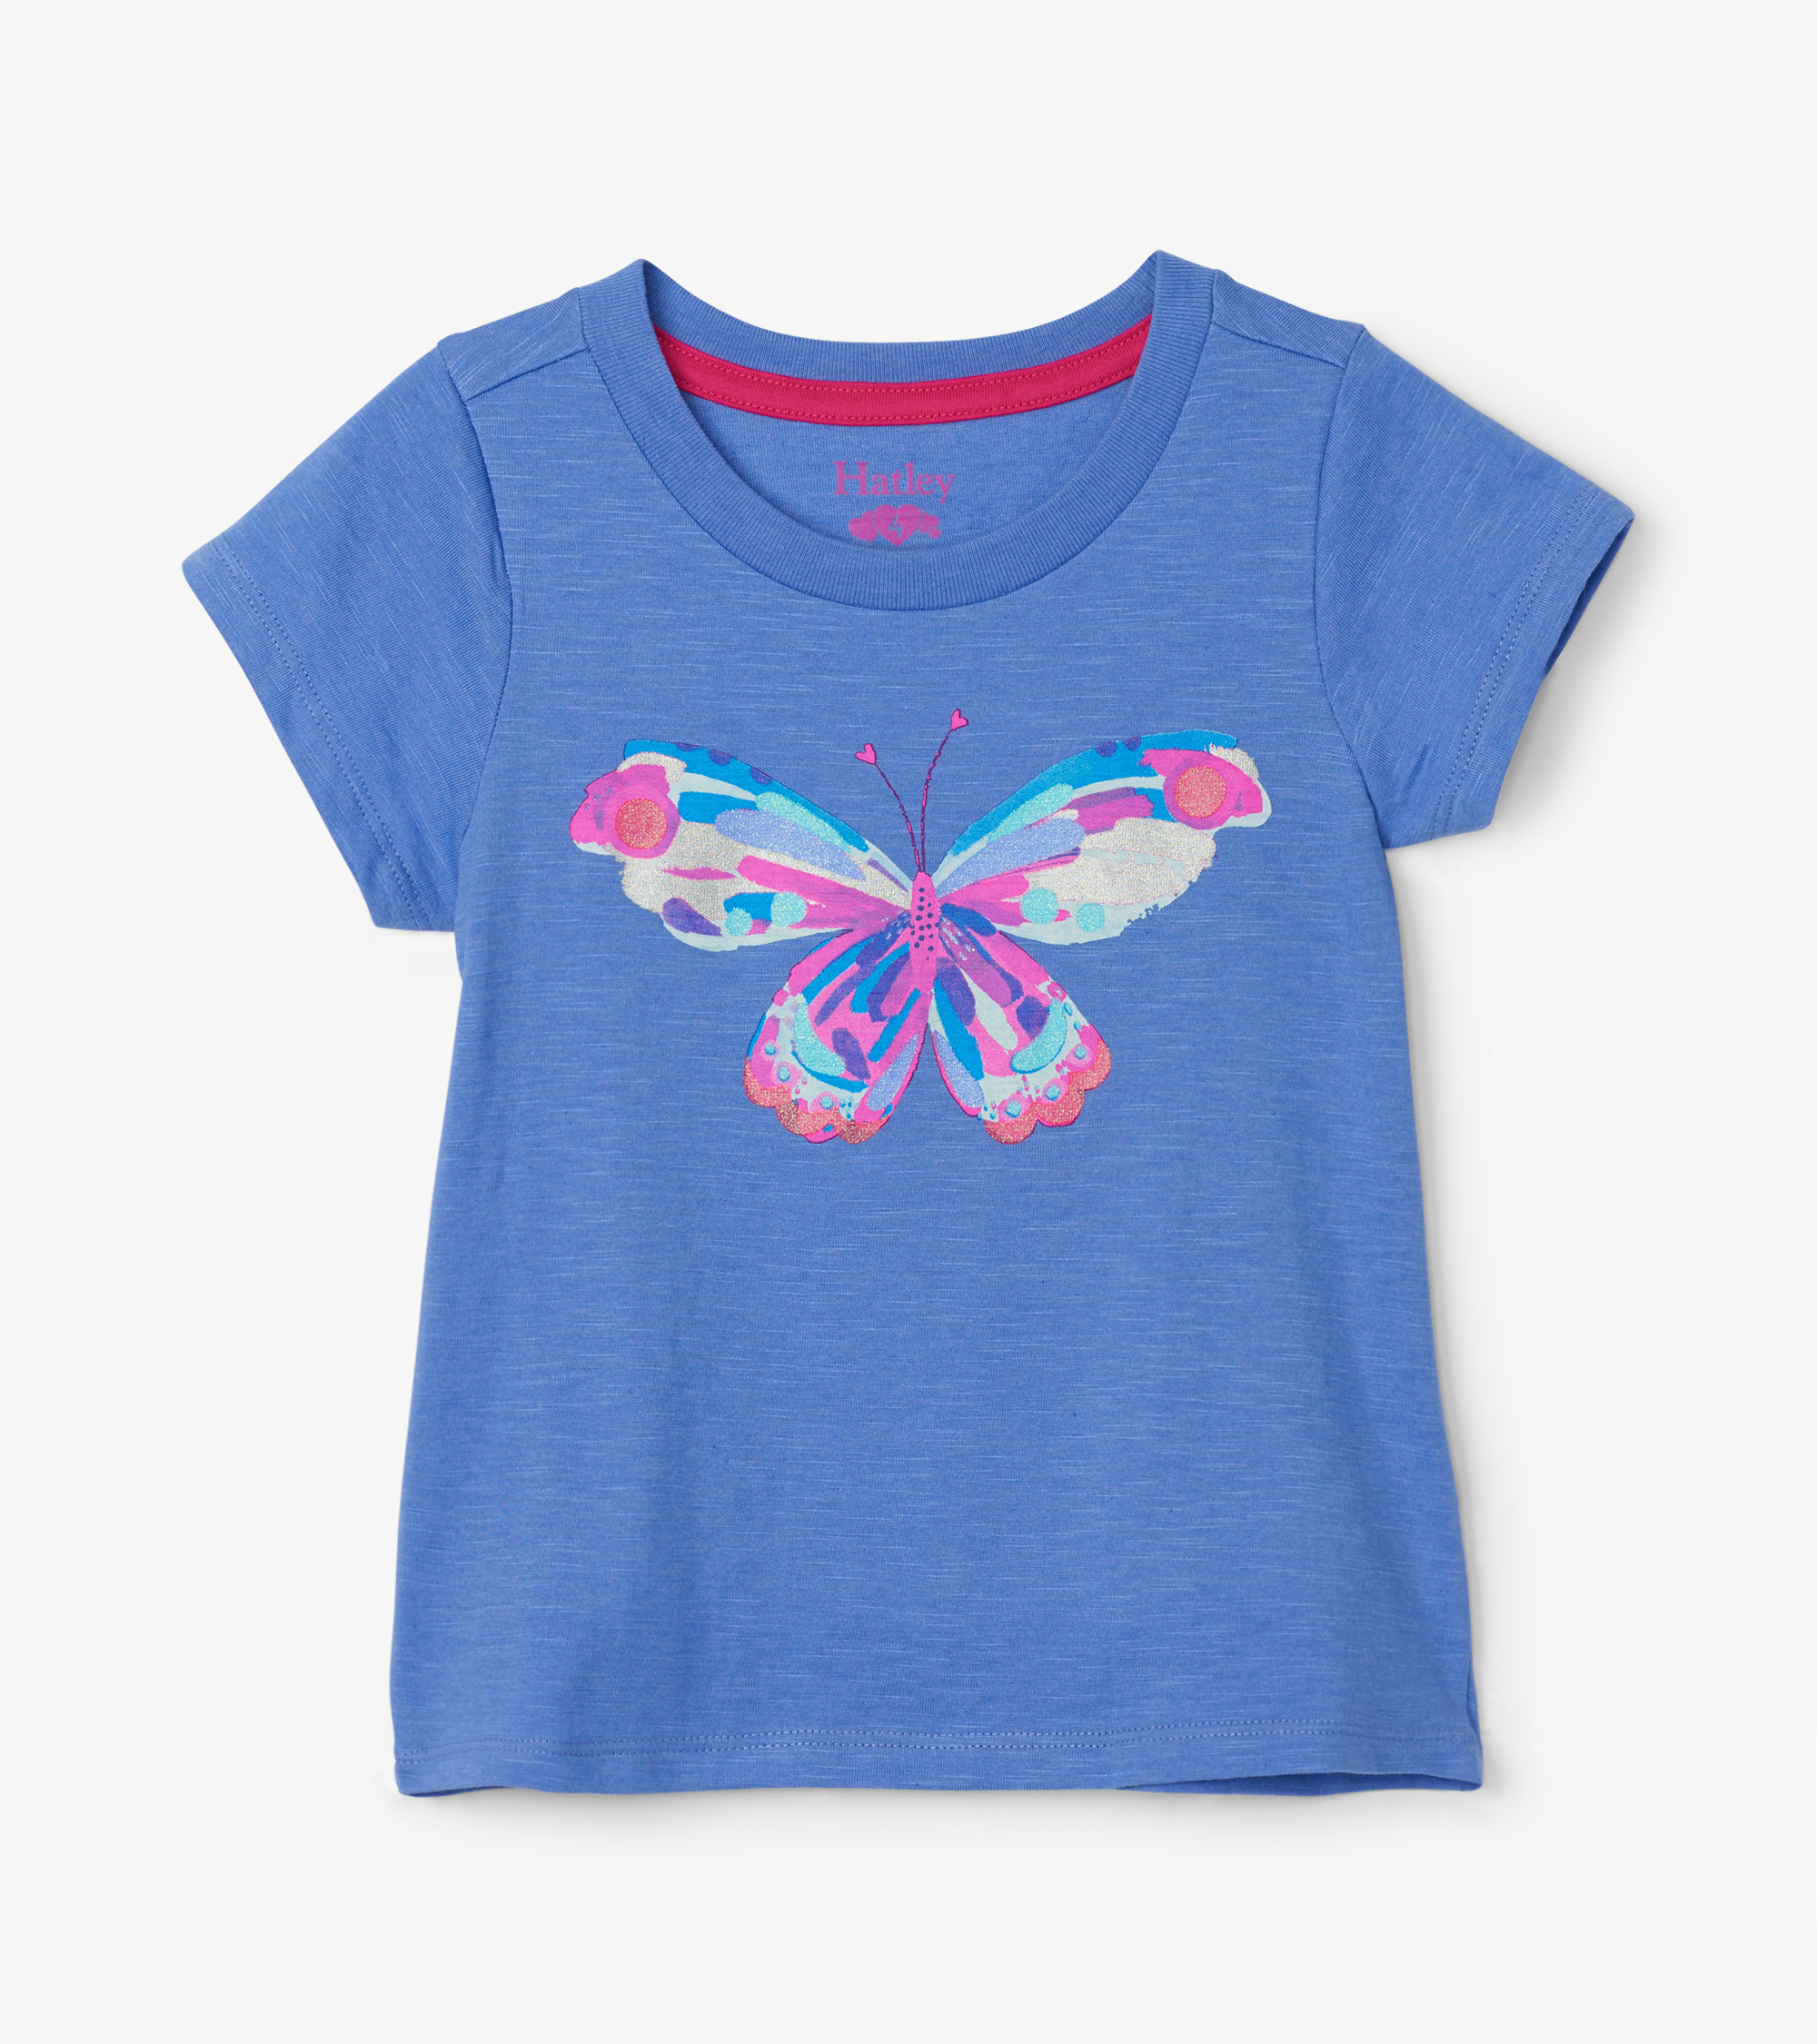 Hatley Soaring Butterfly Graphic Tee